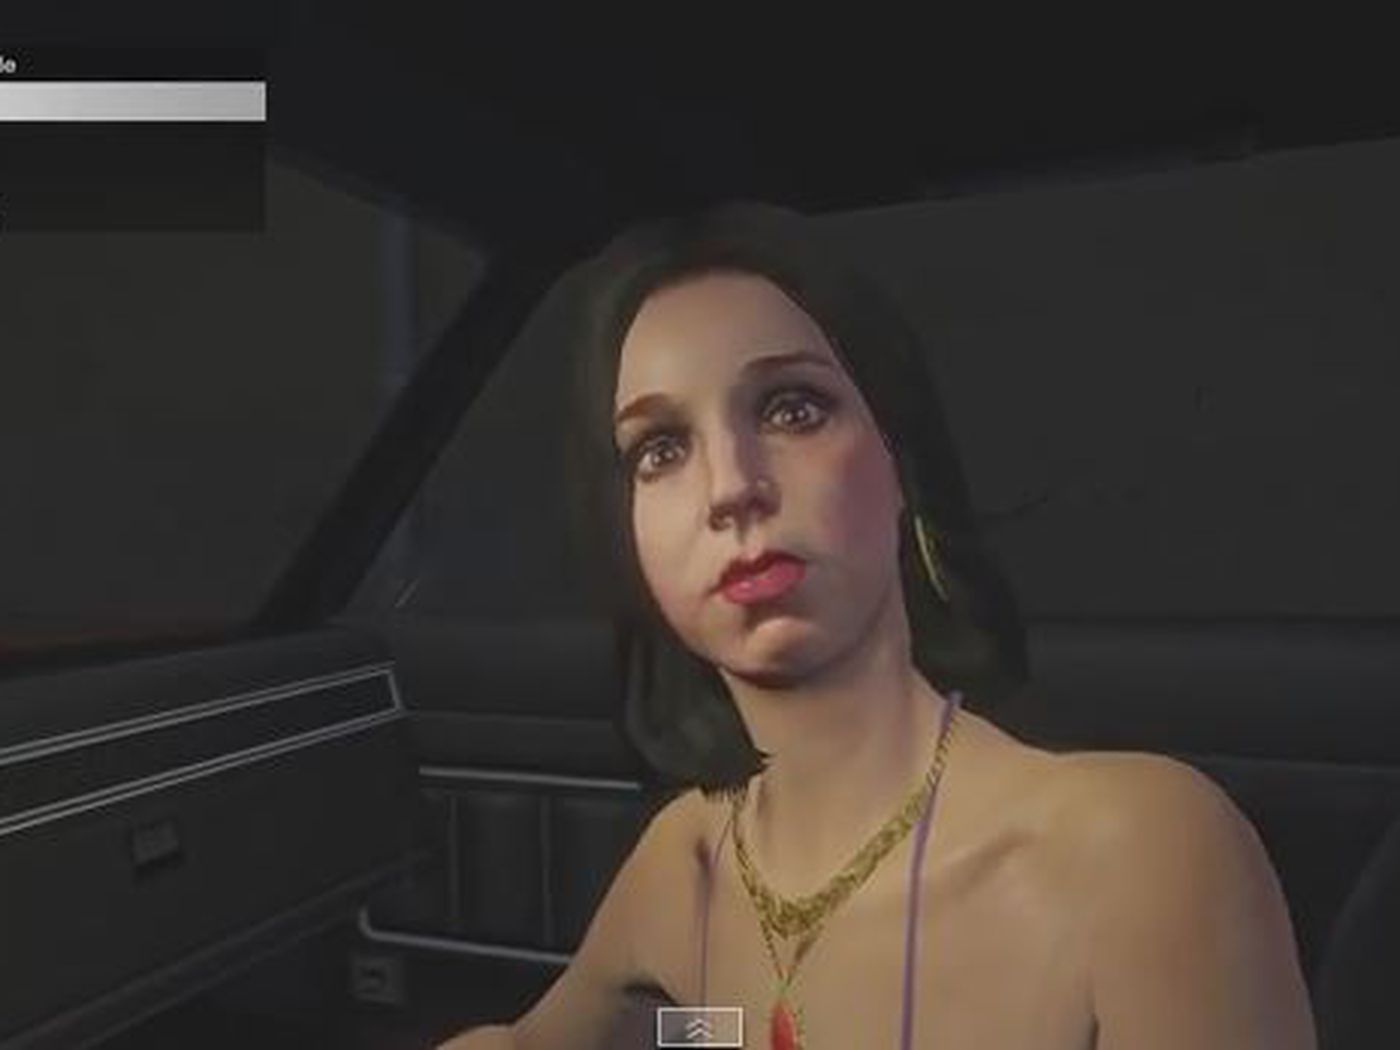 Grand Theft Auto 5's first-person sex is lurid, graphic - Polygon